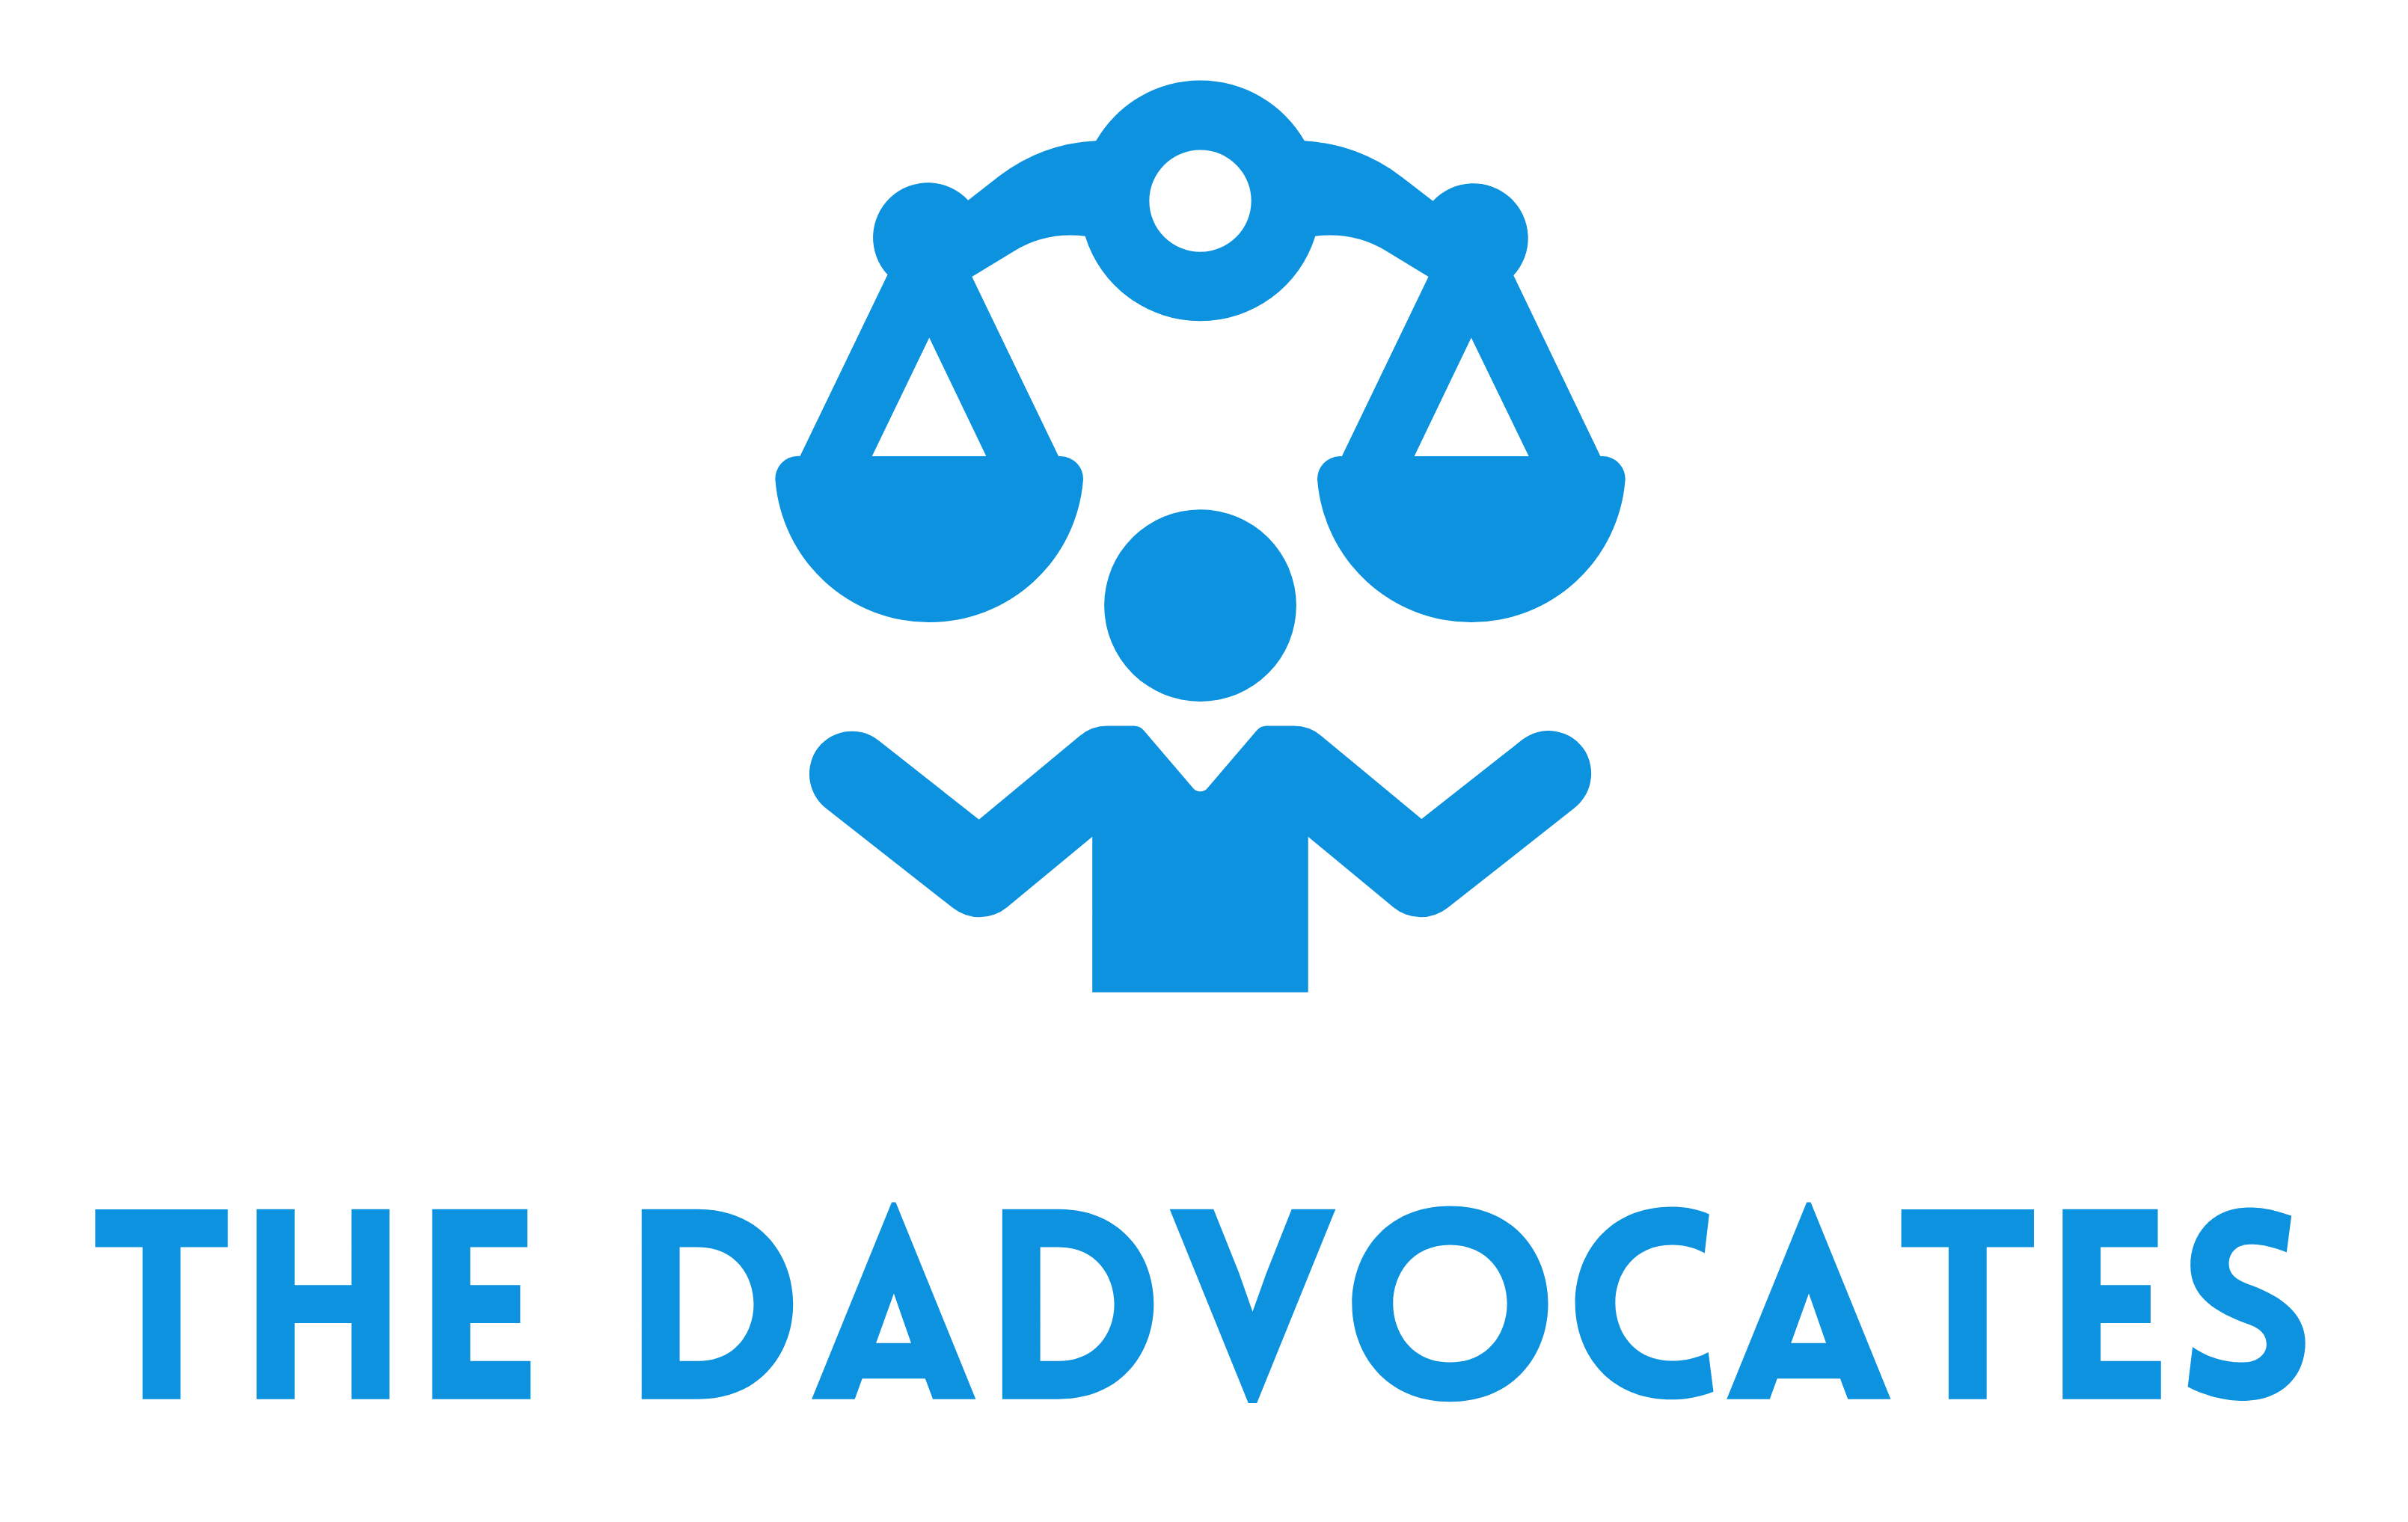 The Dadvocates